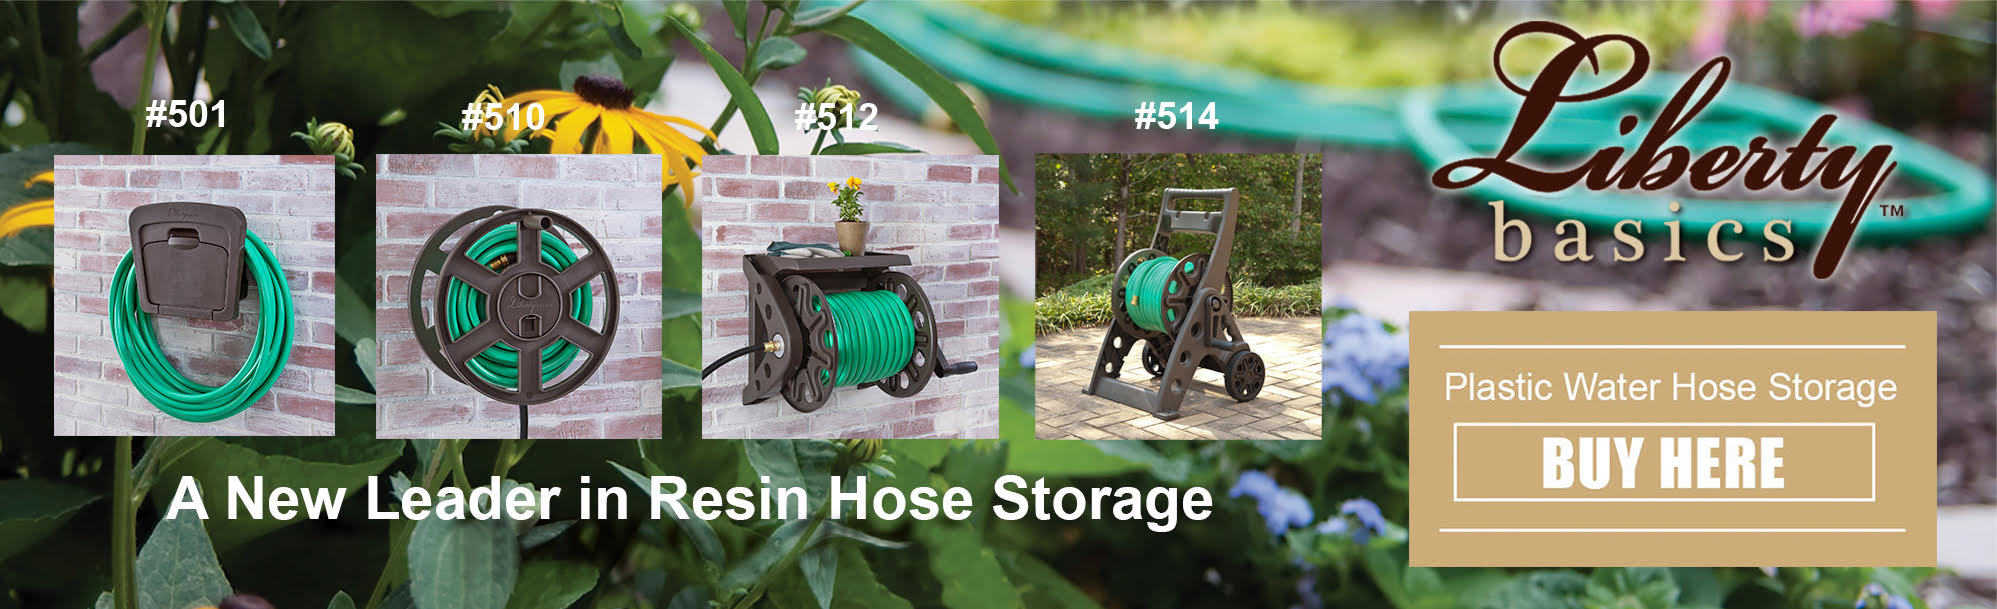 Liberty Basics - A new leader in resin hose storage - 2020 pic